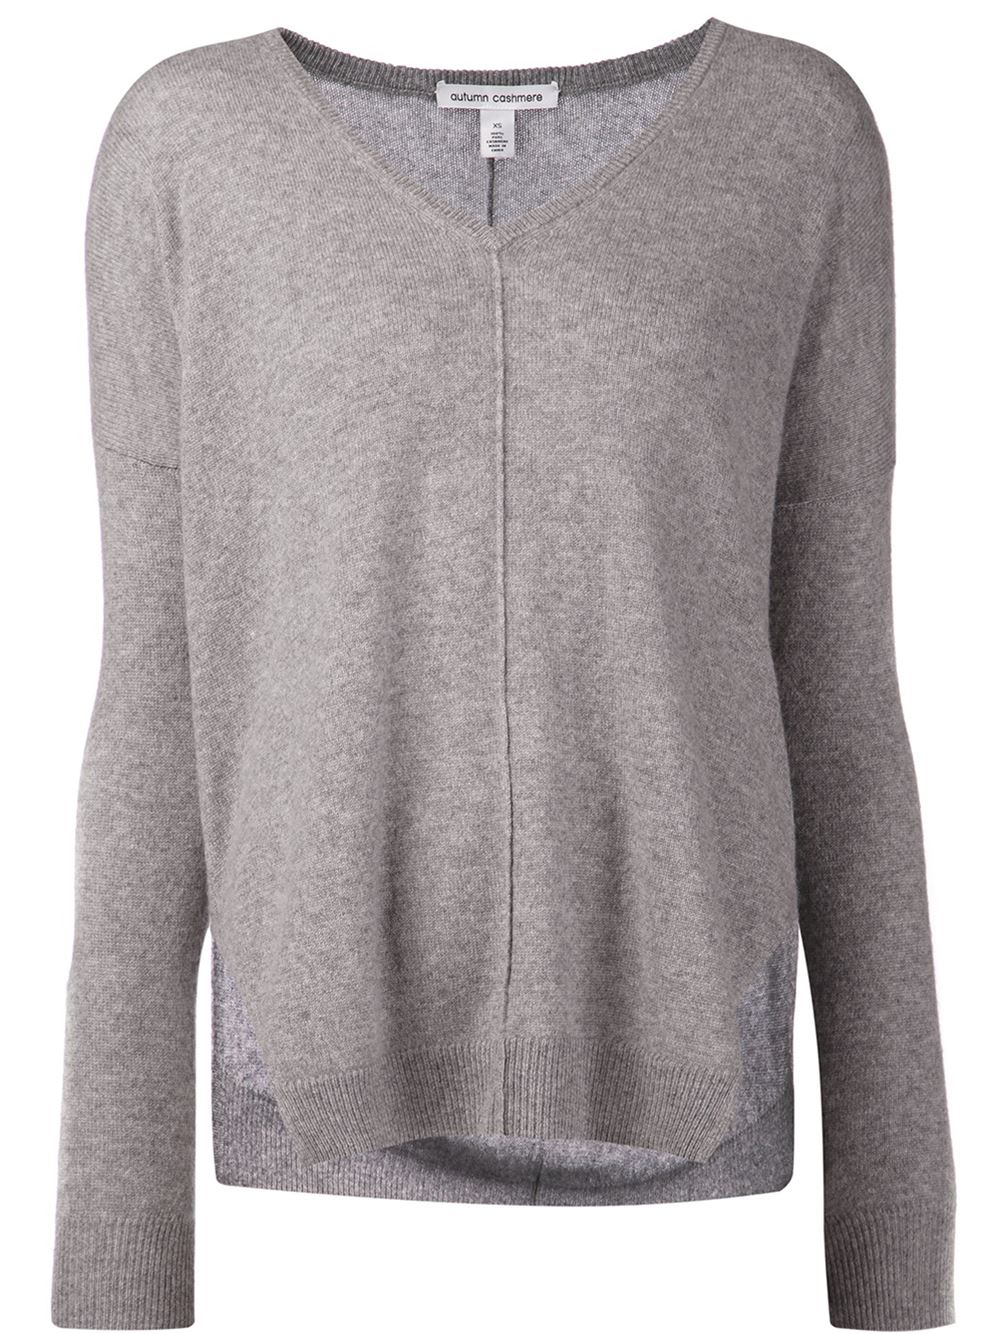 Autumn cashmere Slouchy V-Neck Sweater in Gray | Lyst